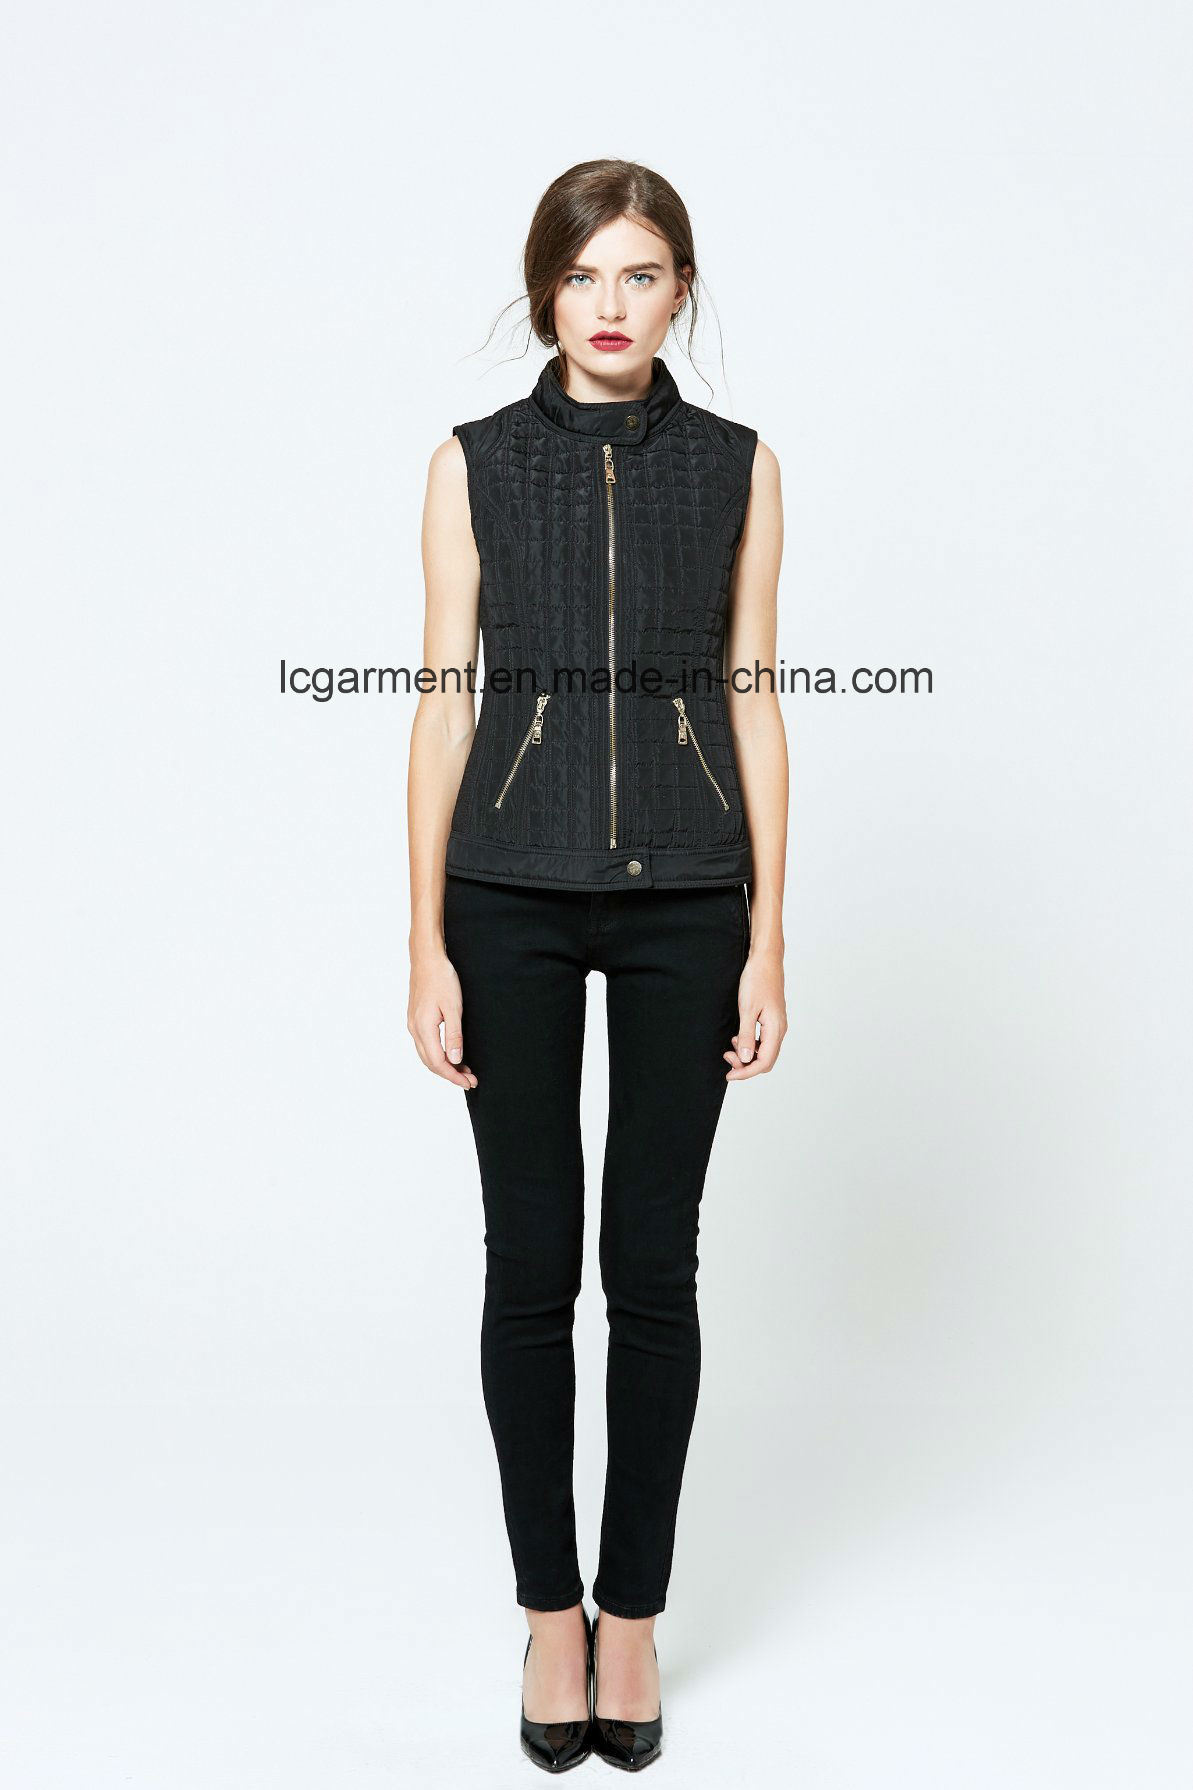 Good Quality Fashion OEM ODM Polyester Vest Winter Ladies Waistcoat